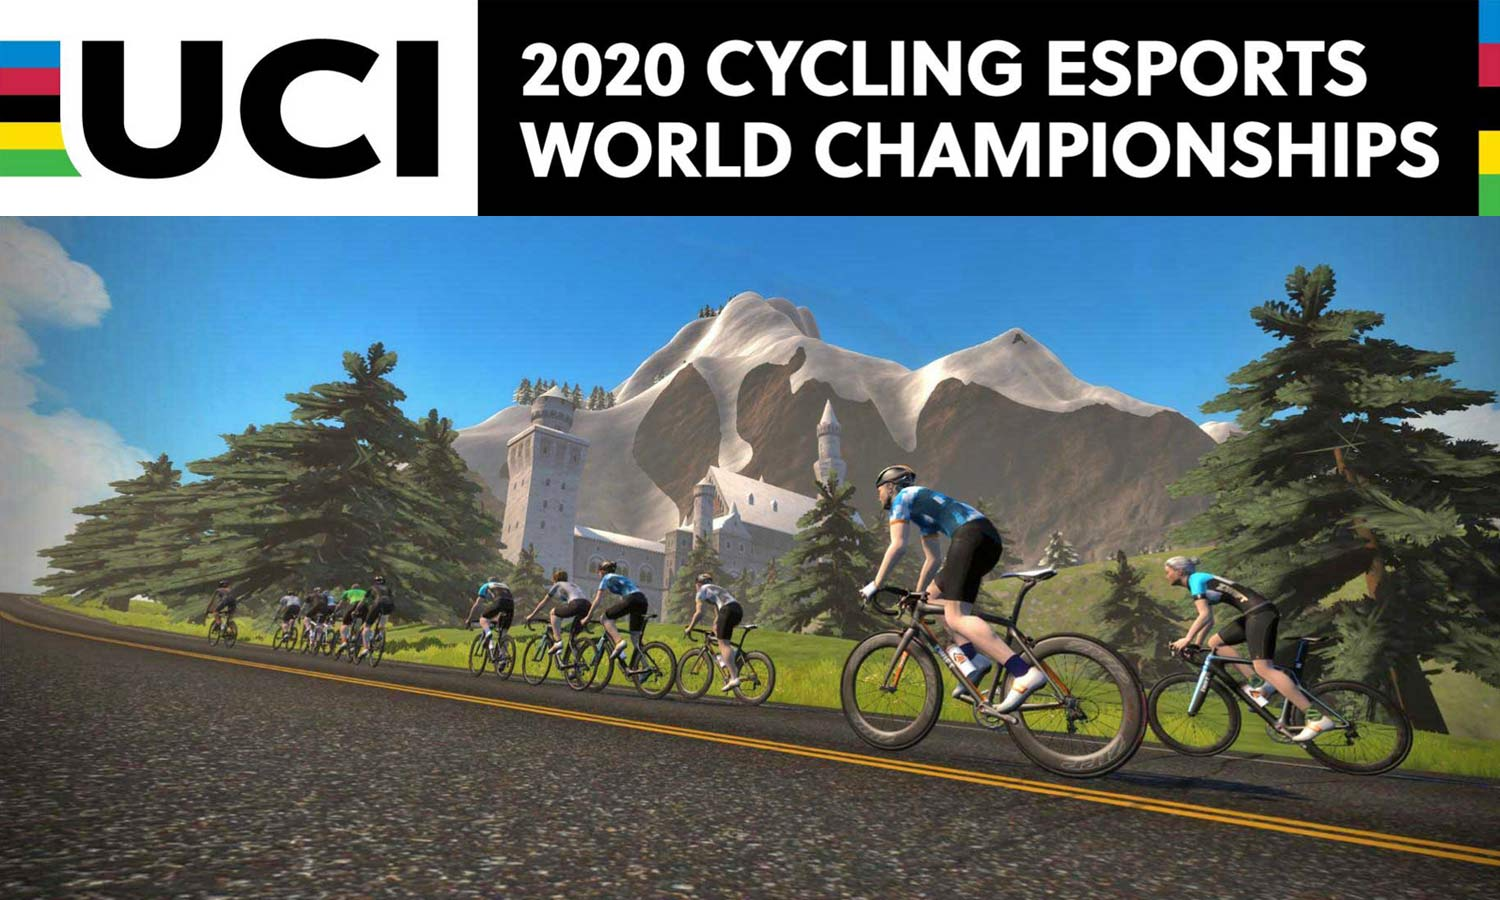 2020 UCI Cycling eSports World Champs in Watopia, e-World Championship online